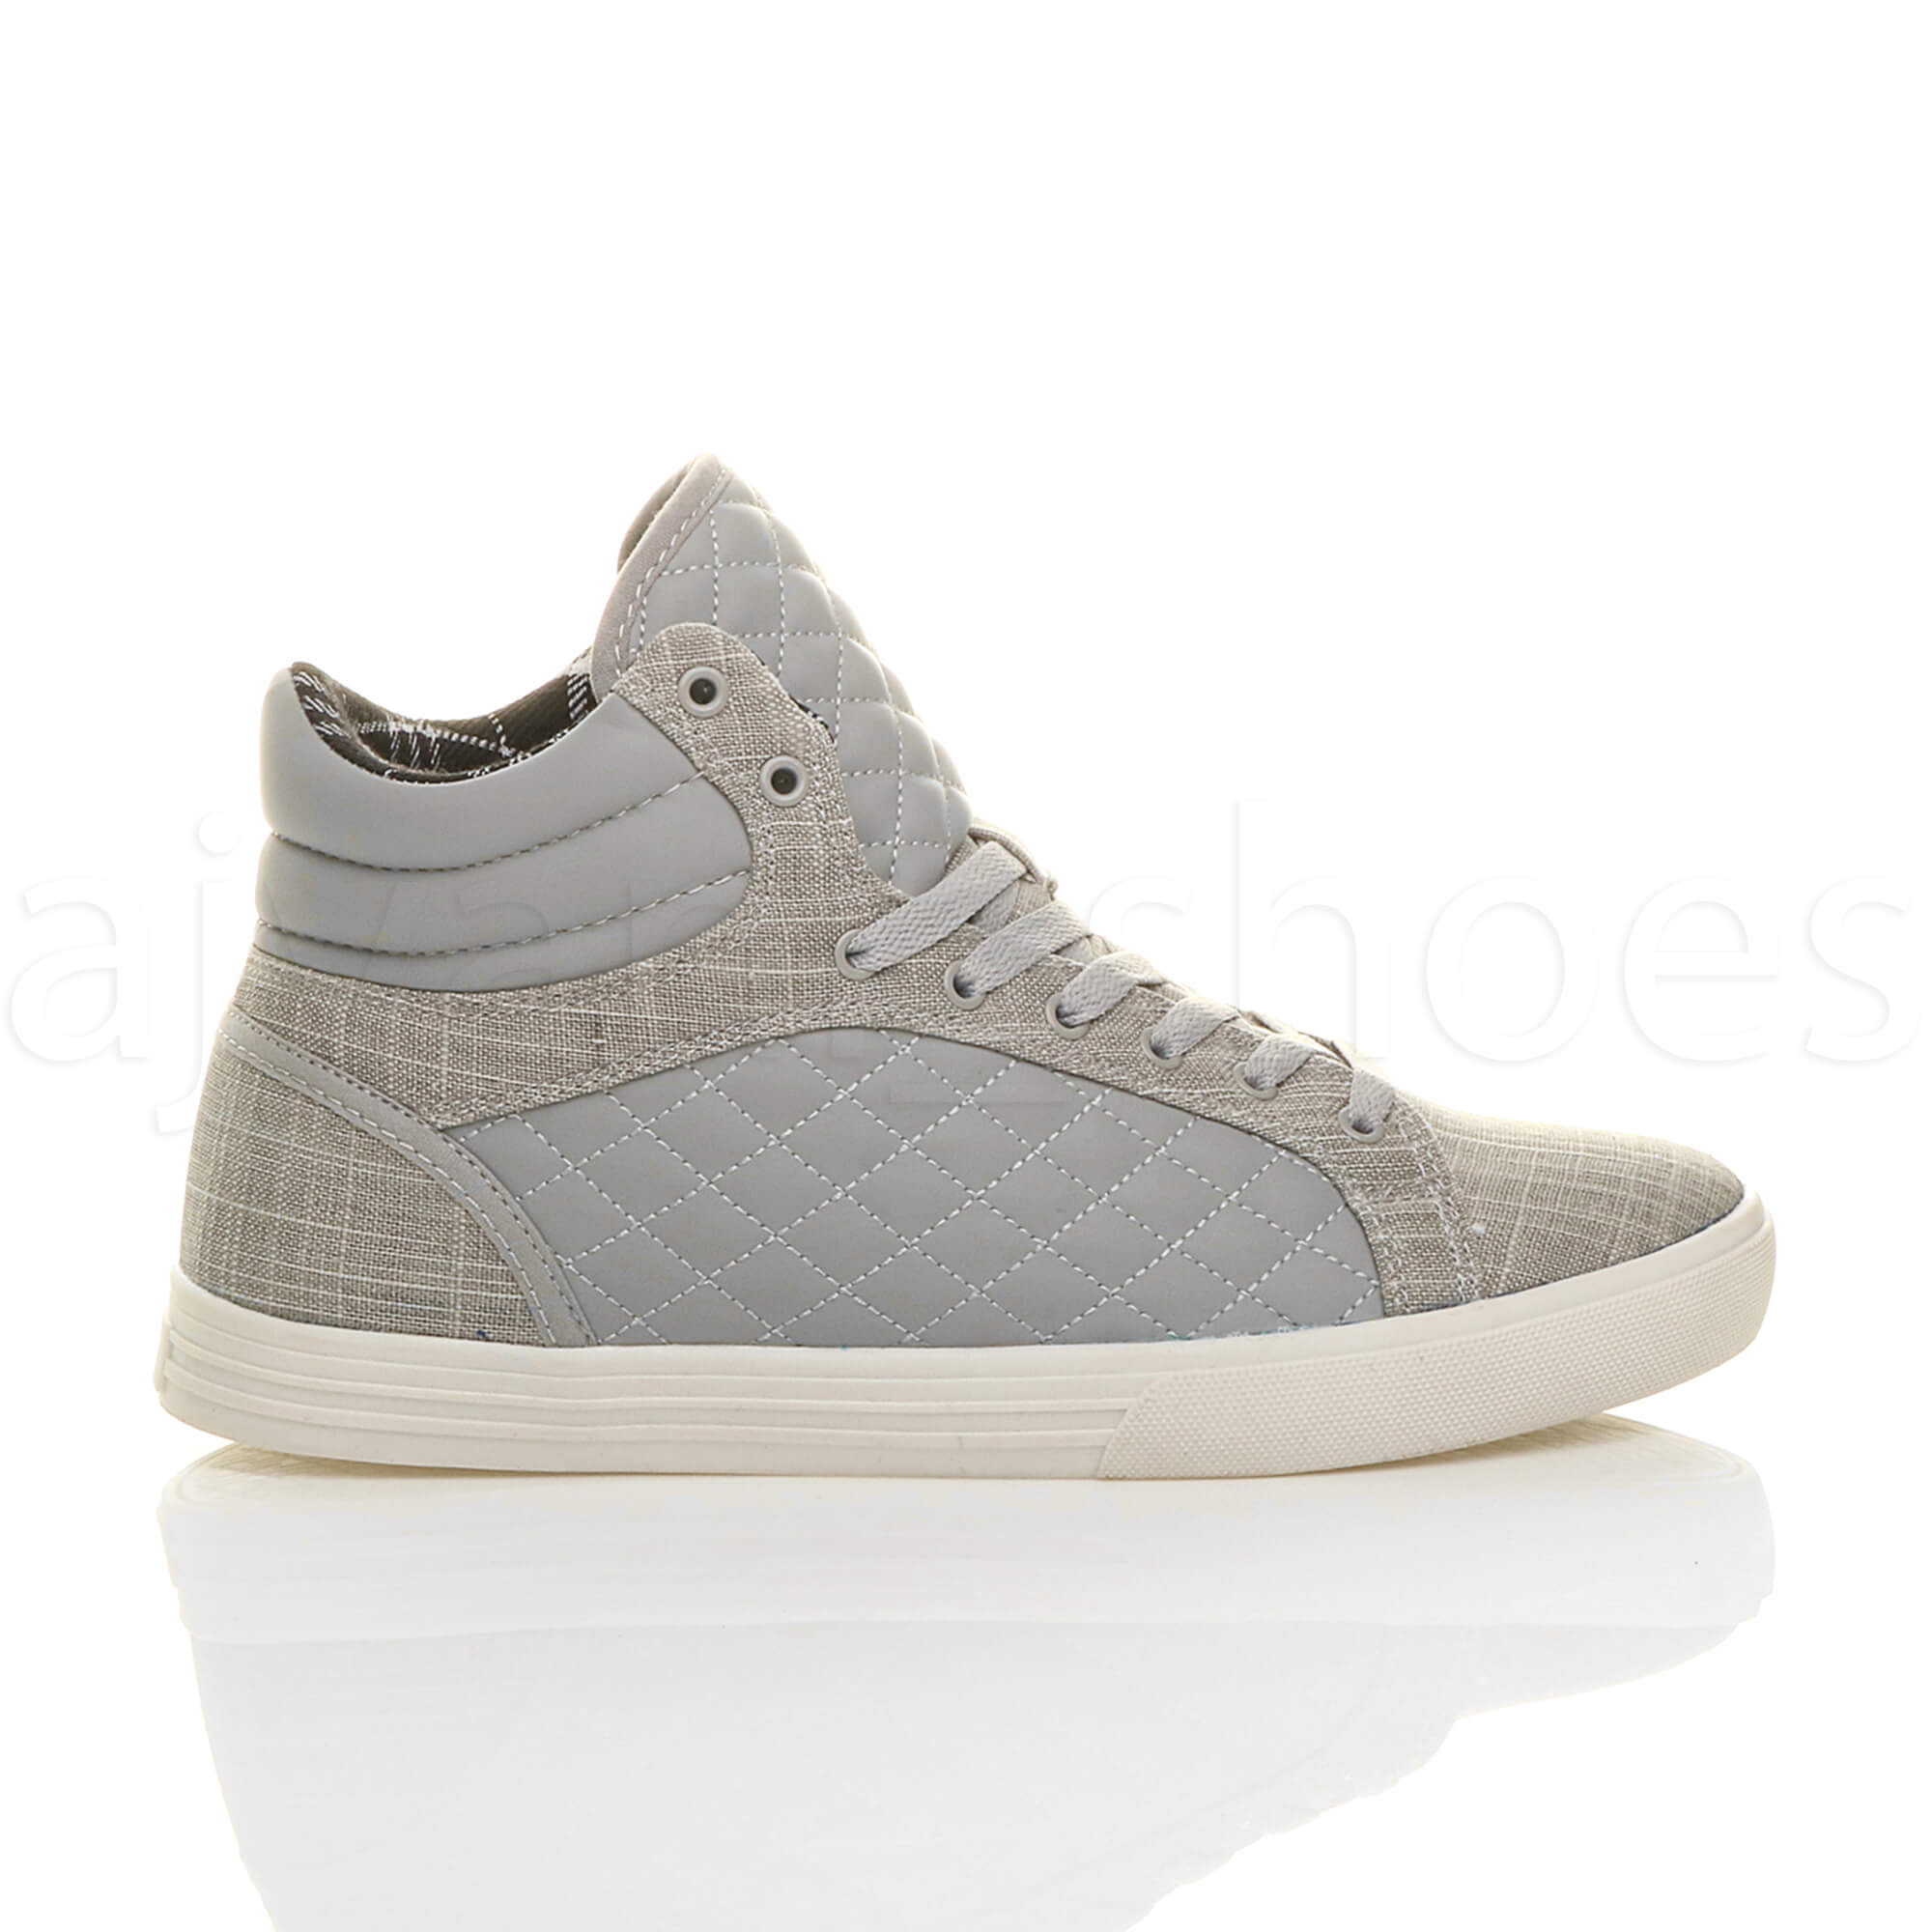 MENS-QUILTED-LACE-UP-FLAT-CASUAL-HI-HIGH-TOP-TRAINERS-SHOES-ANKLE-BOOTS-SIZE thumbnail 17